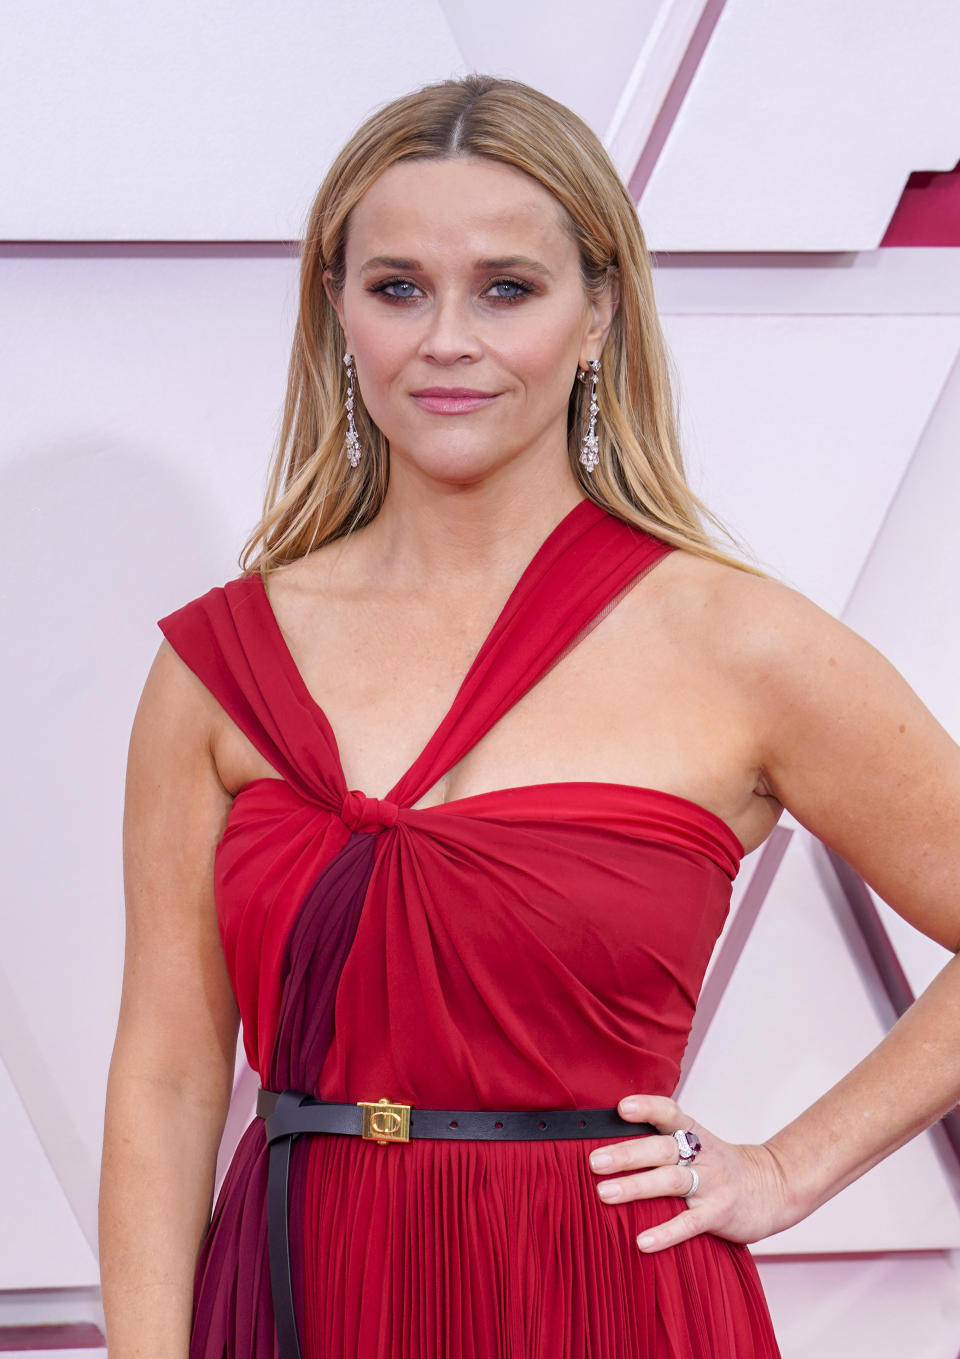 Reese Witherspoon wore Giorgio Armani's Luminious Silk Foundation to the Oscars on Sunday. (Getty Images)